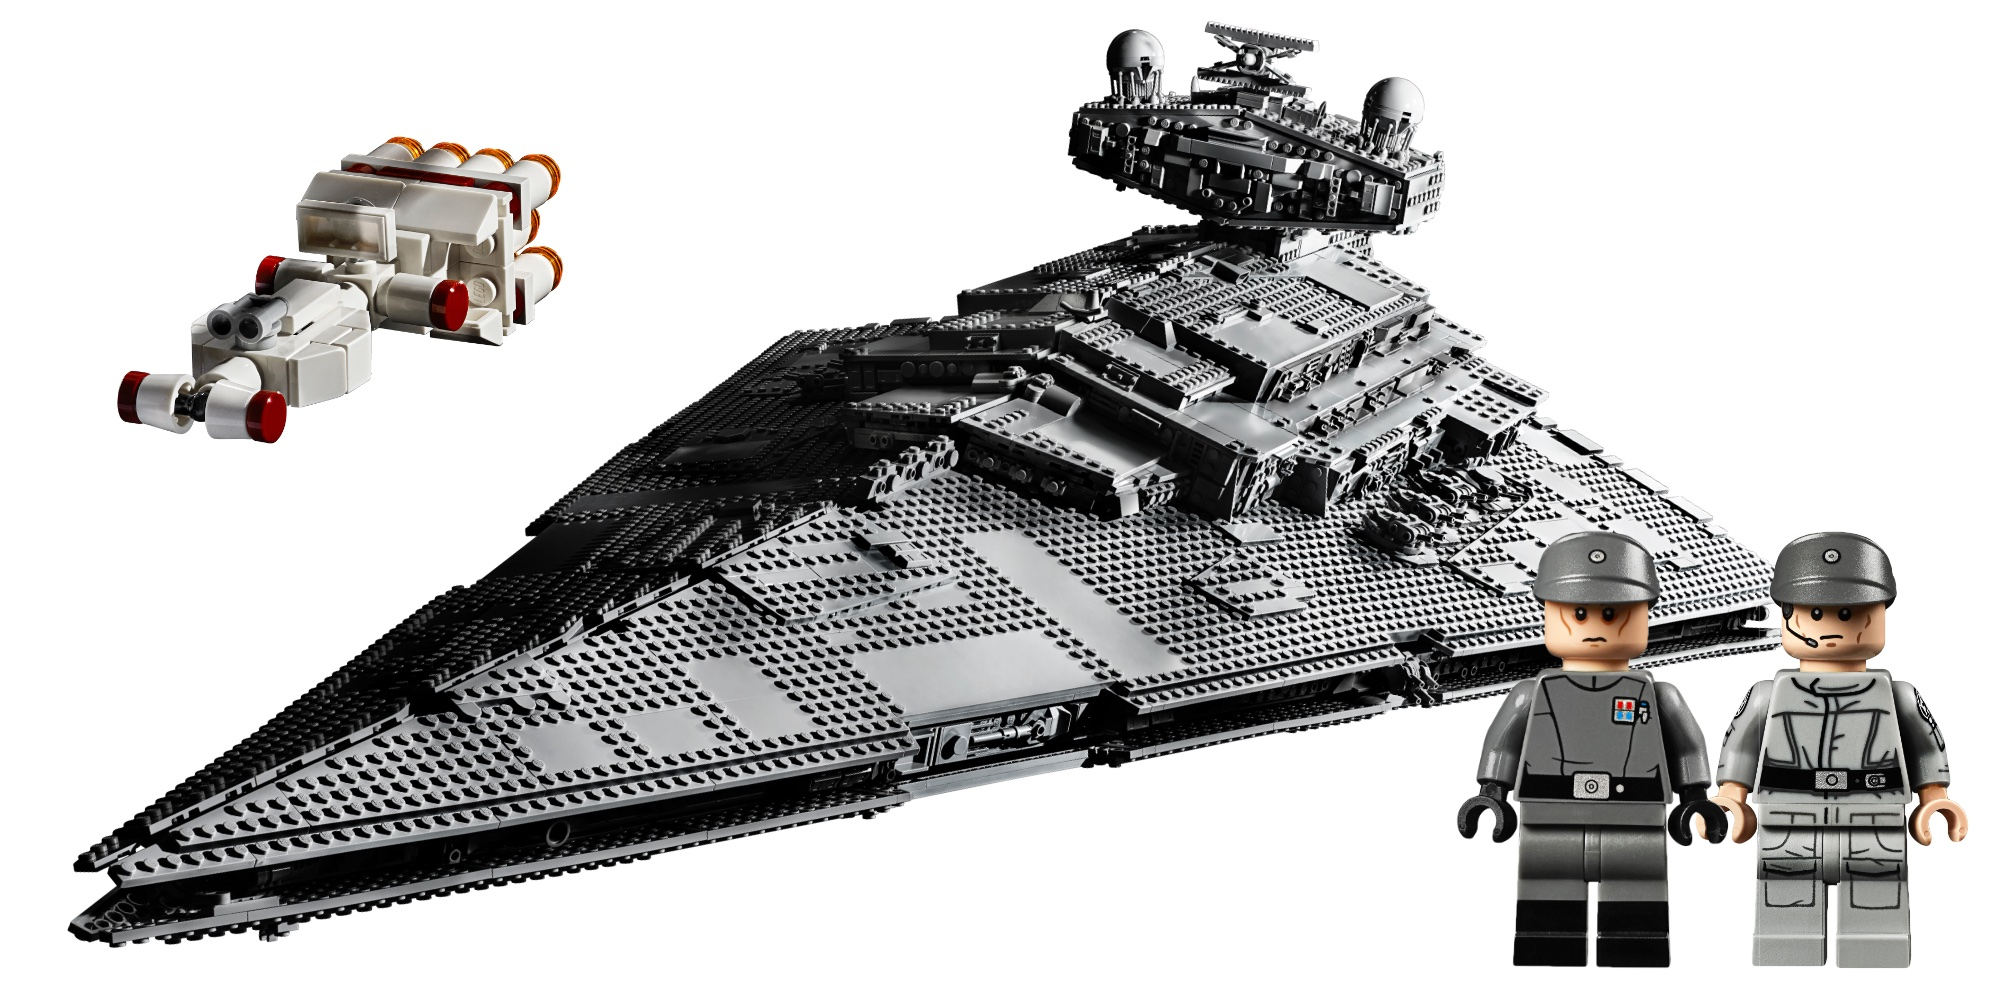 LEGO Imperial Star Destroyer packs over 4,700 pieces, more